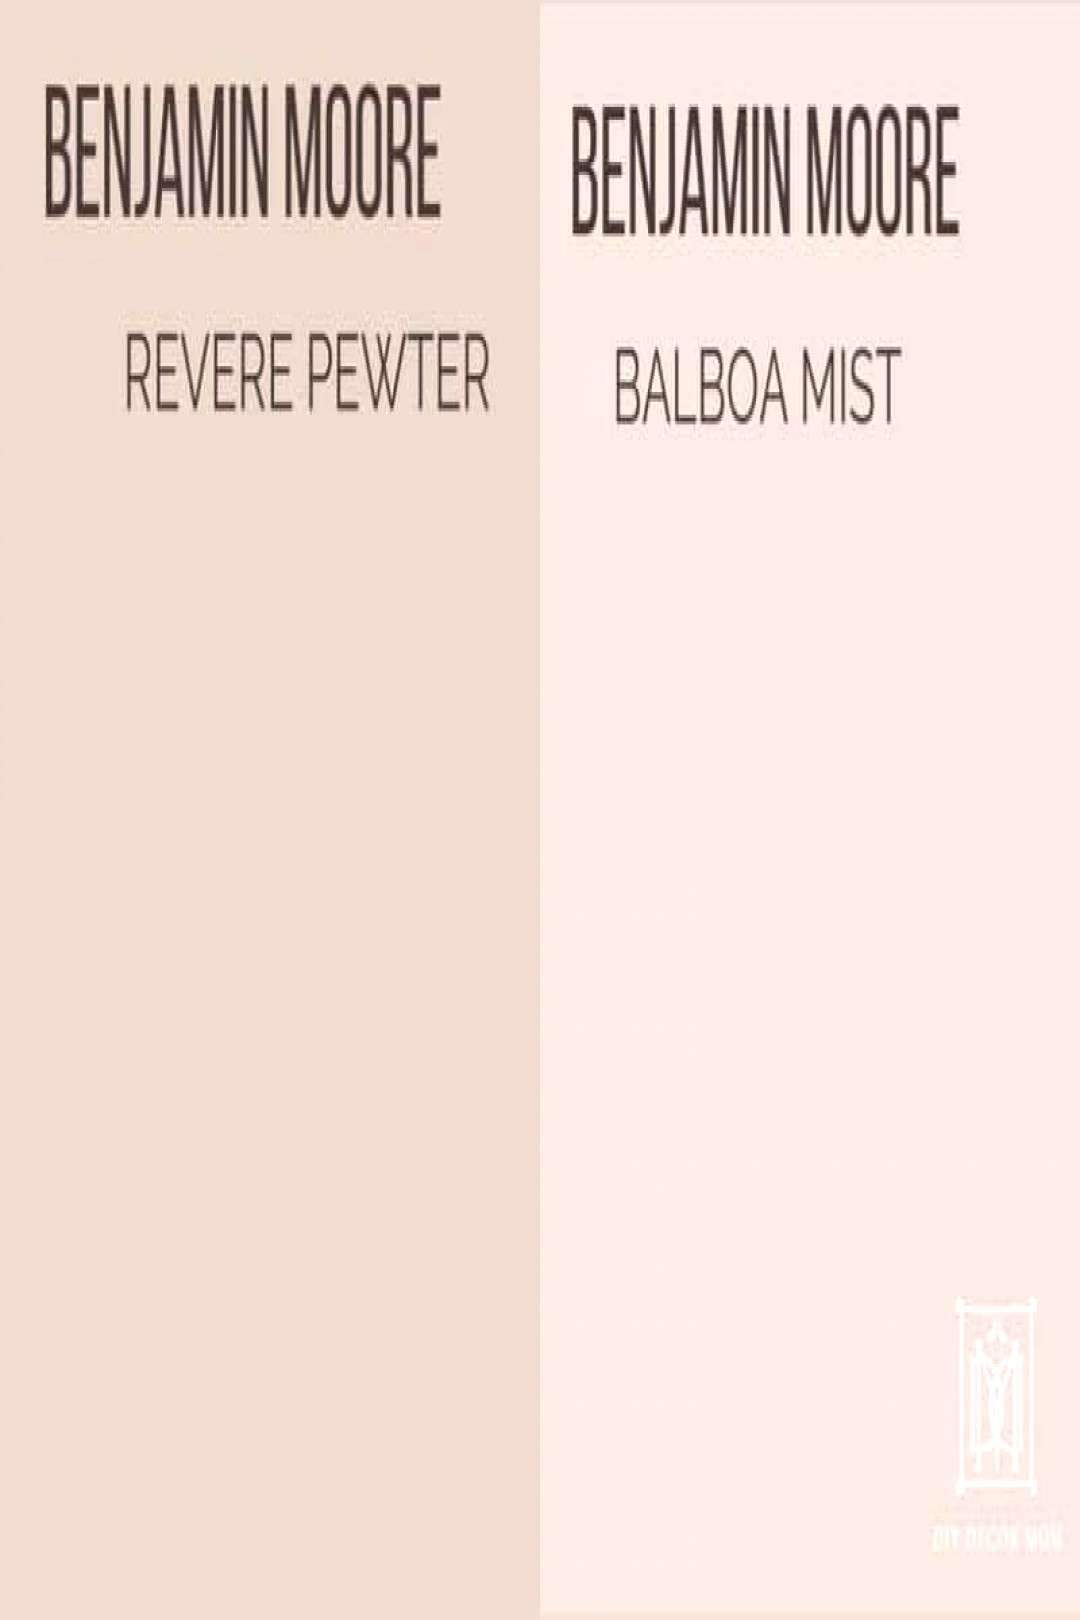 Benjamin Moore Revere Pewter: Is It the Right Paint Color for Your Home? - DIY Decor Mom